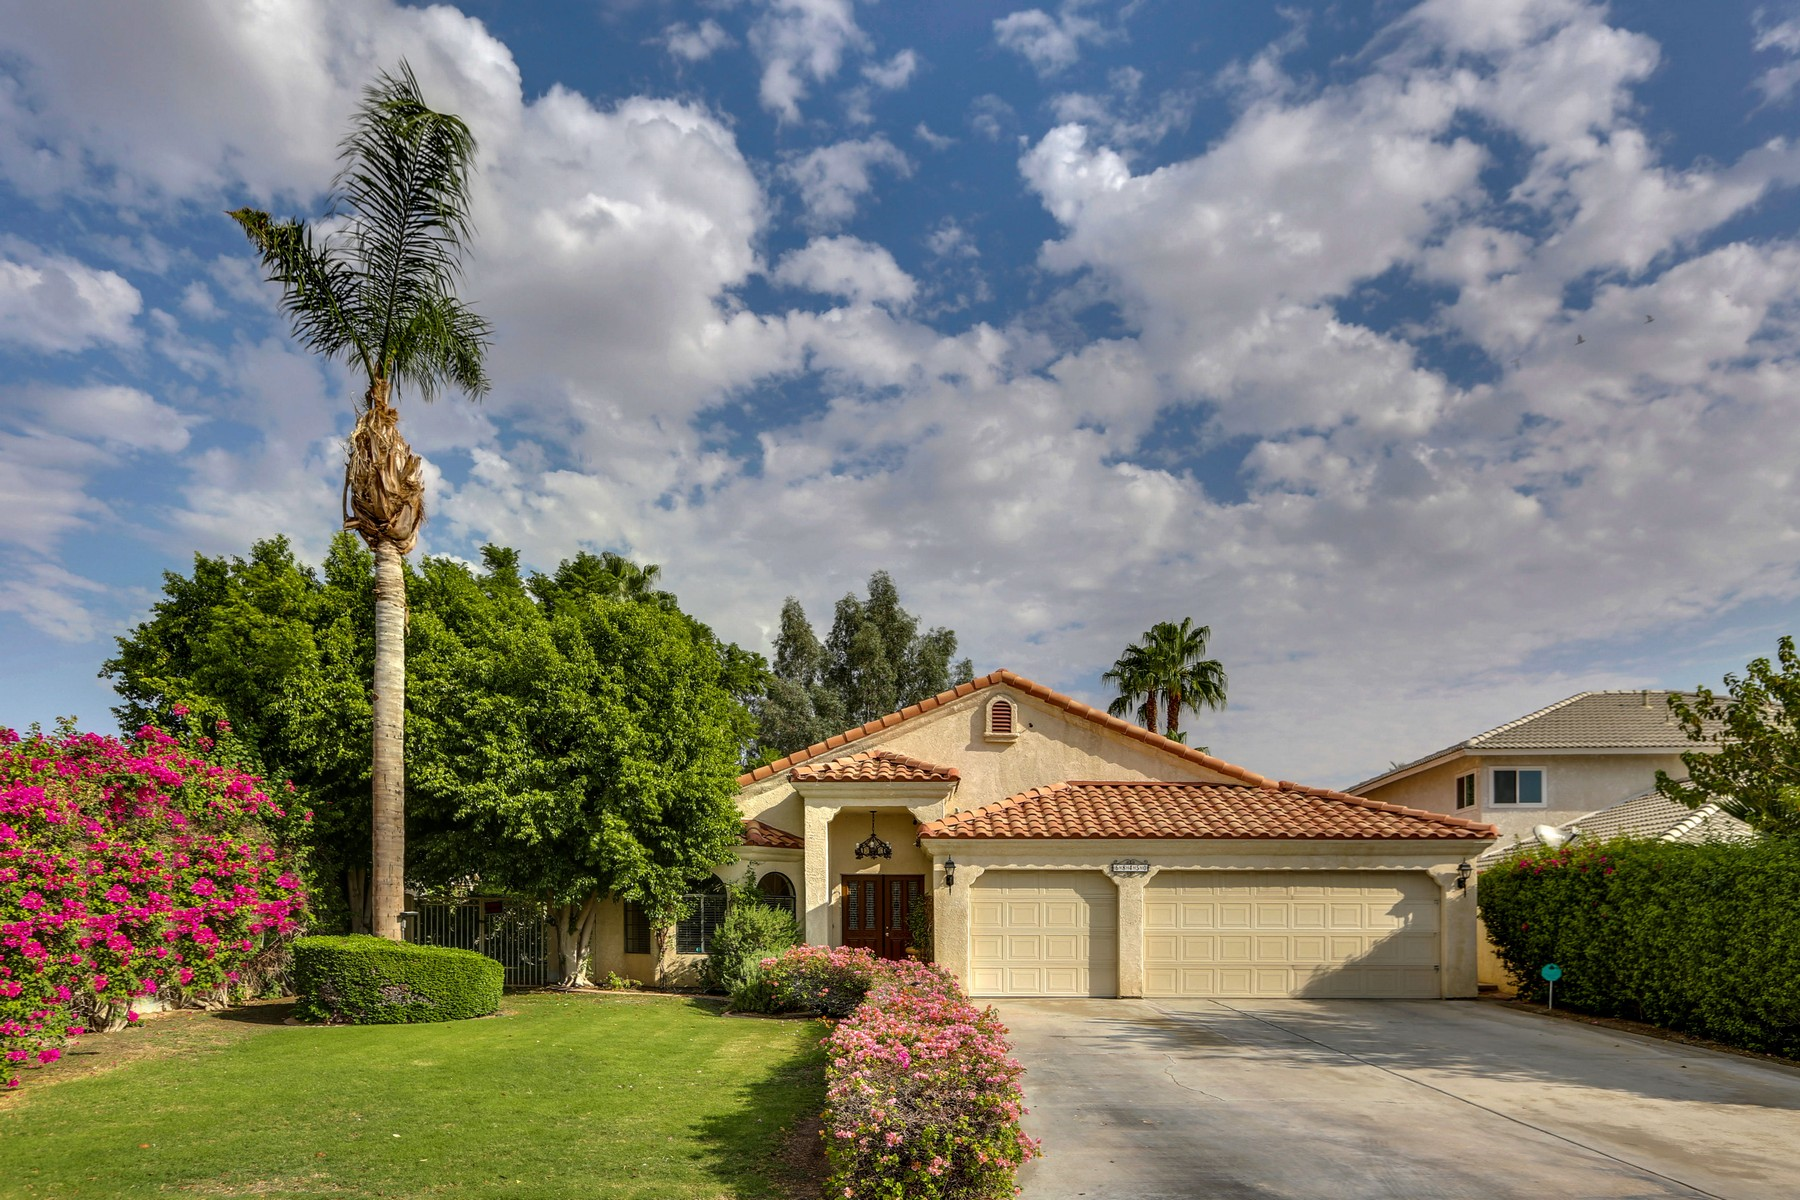 Single Family Home for Sale at 68450 Durango Road Cathedral City, California, 92234 United States